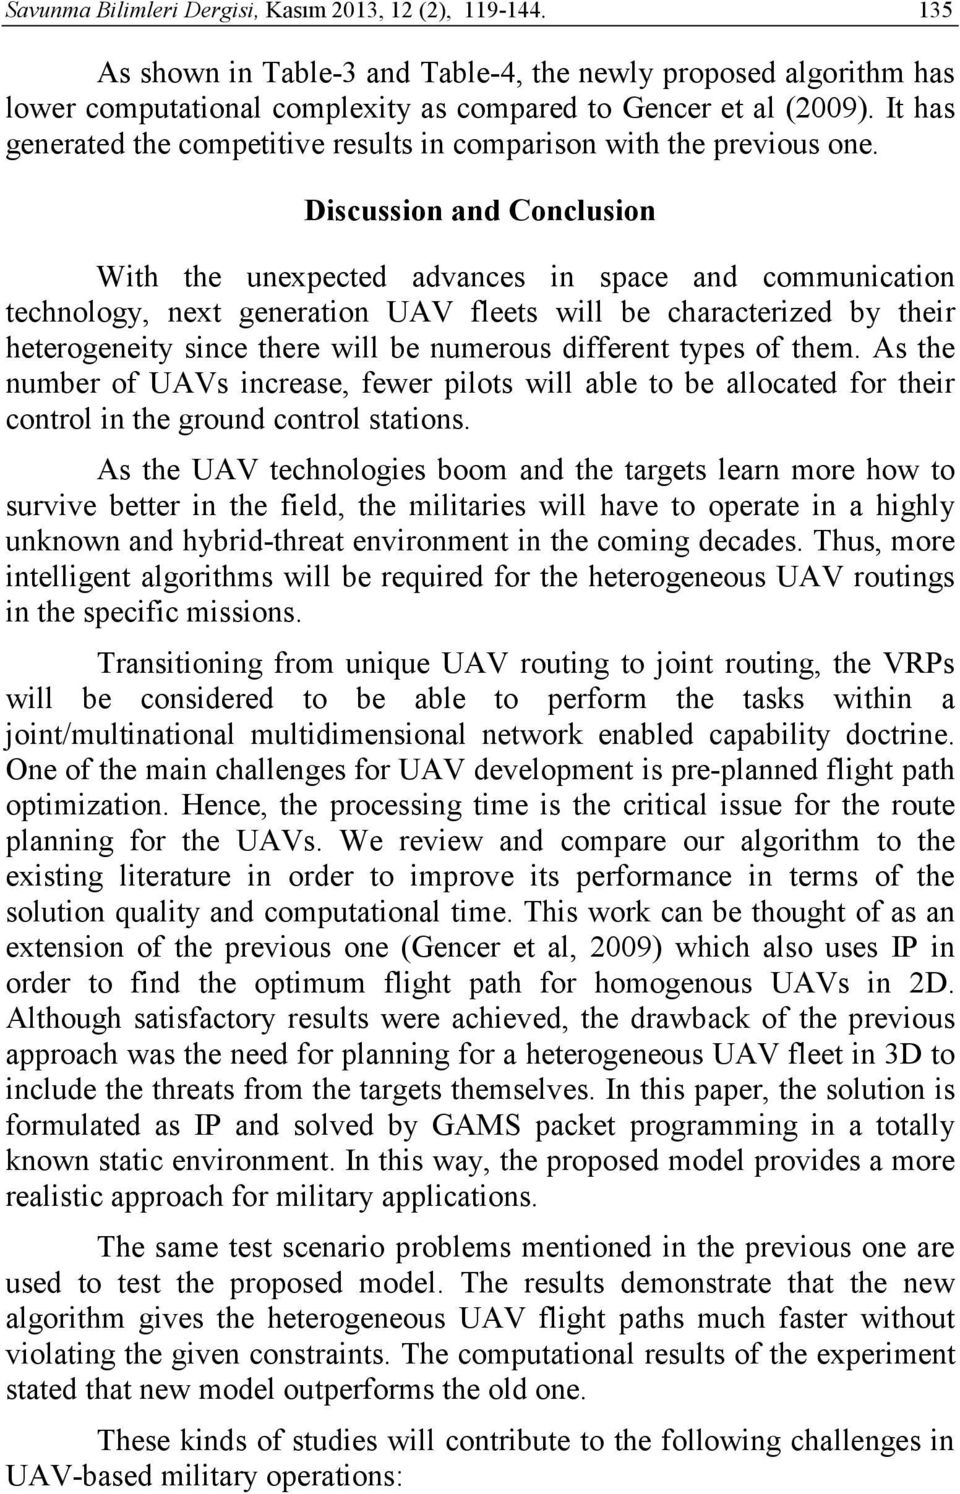 Discussion and Conclusion With the unexpected advances in space and communication technology, next generation UAV fleets will be characterized by their heterogeneity since there will be numerous